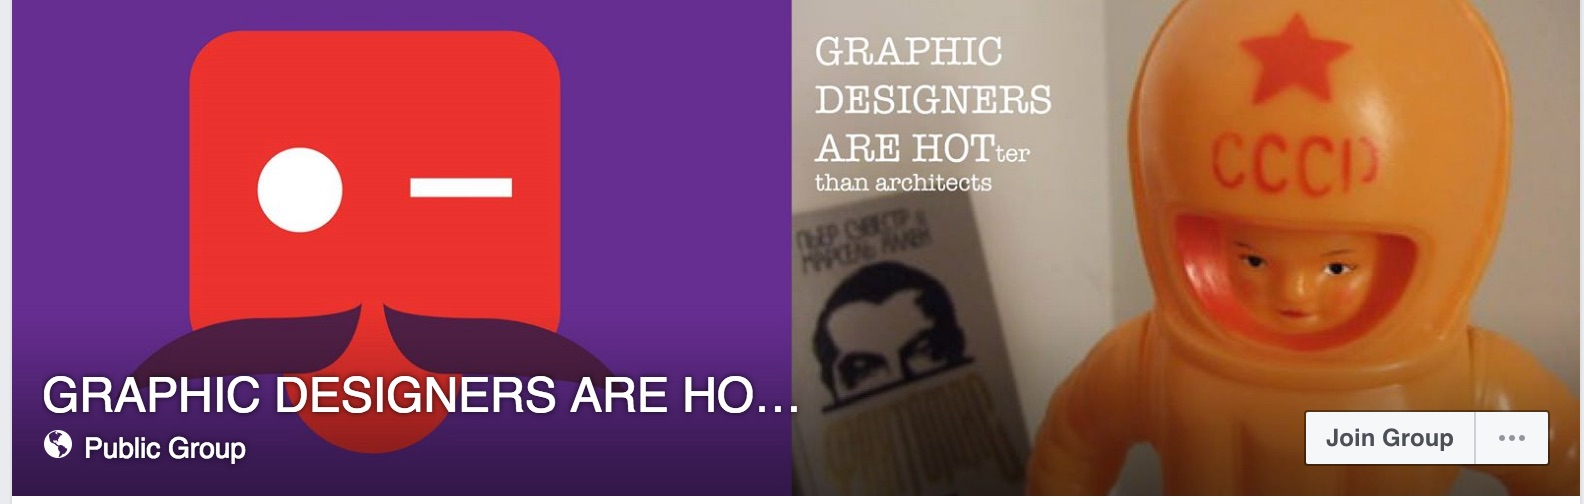 Facebook-Groups-for-Designers-GRAPHIC_DESIGNERS_ARE_HOTTER_THAN_ARCHITECTS_